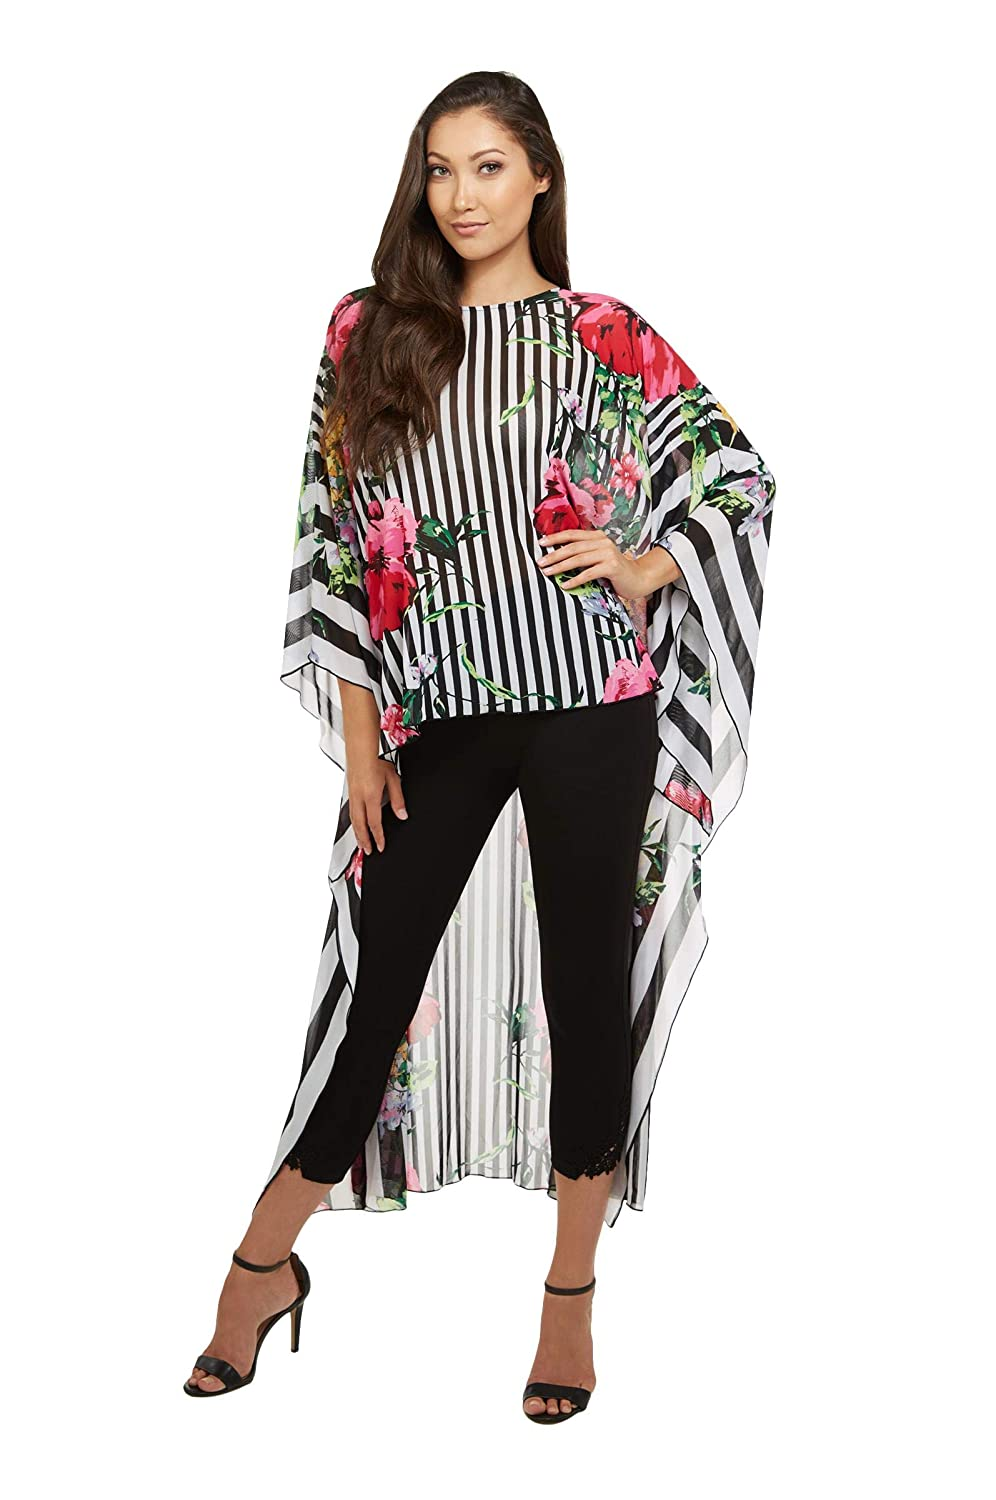 BlkStFloral Floral And Stripe Caftan Top